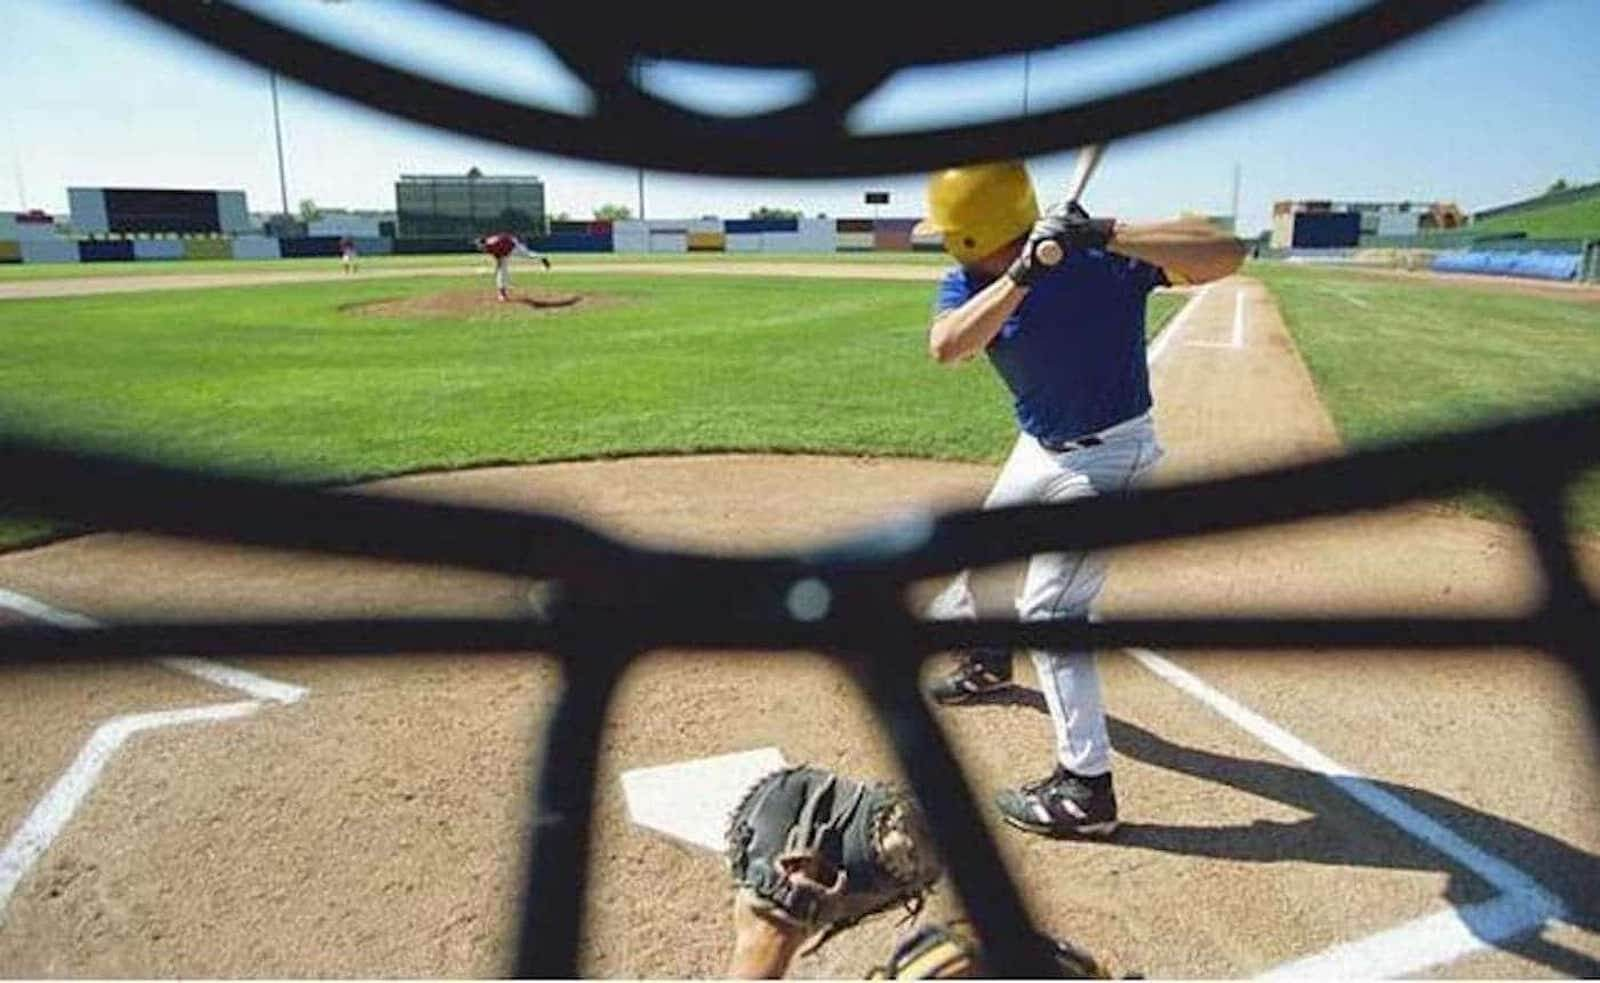 How to Make the Best GoPro Videos - Baseball Image - Camera Angles